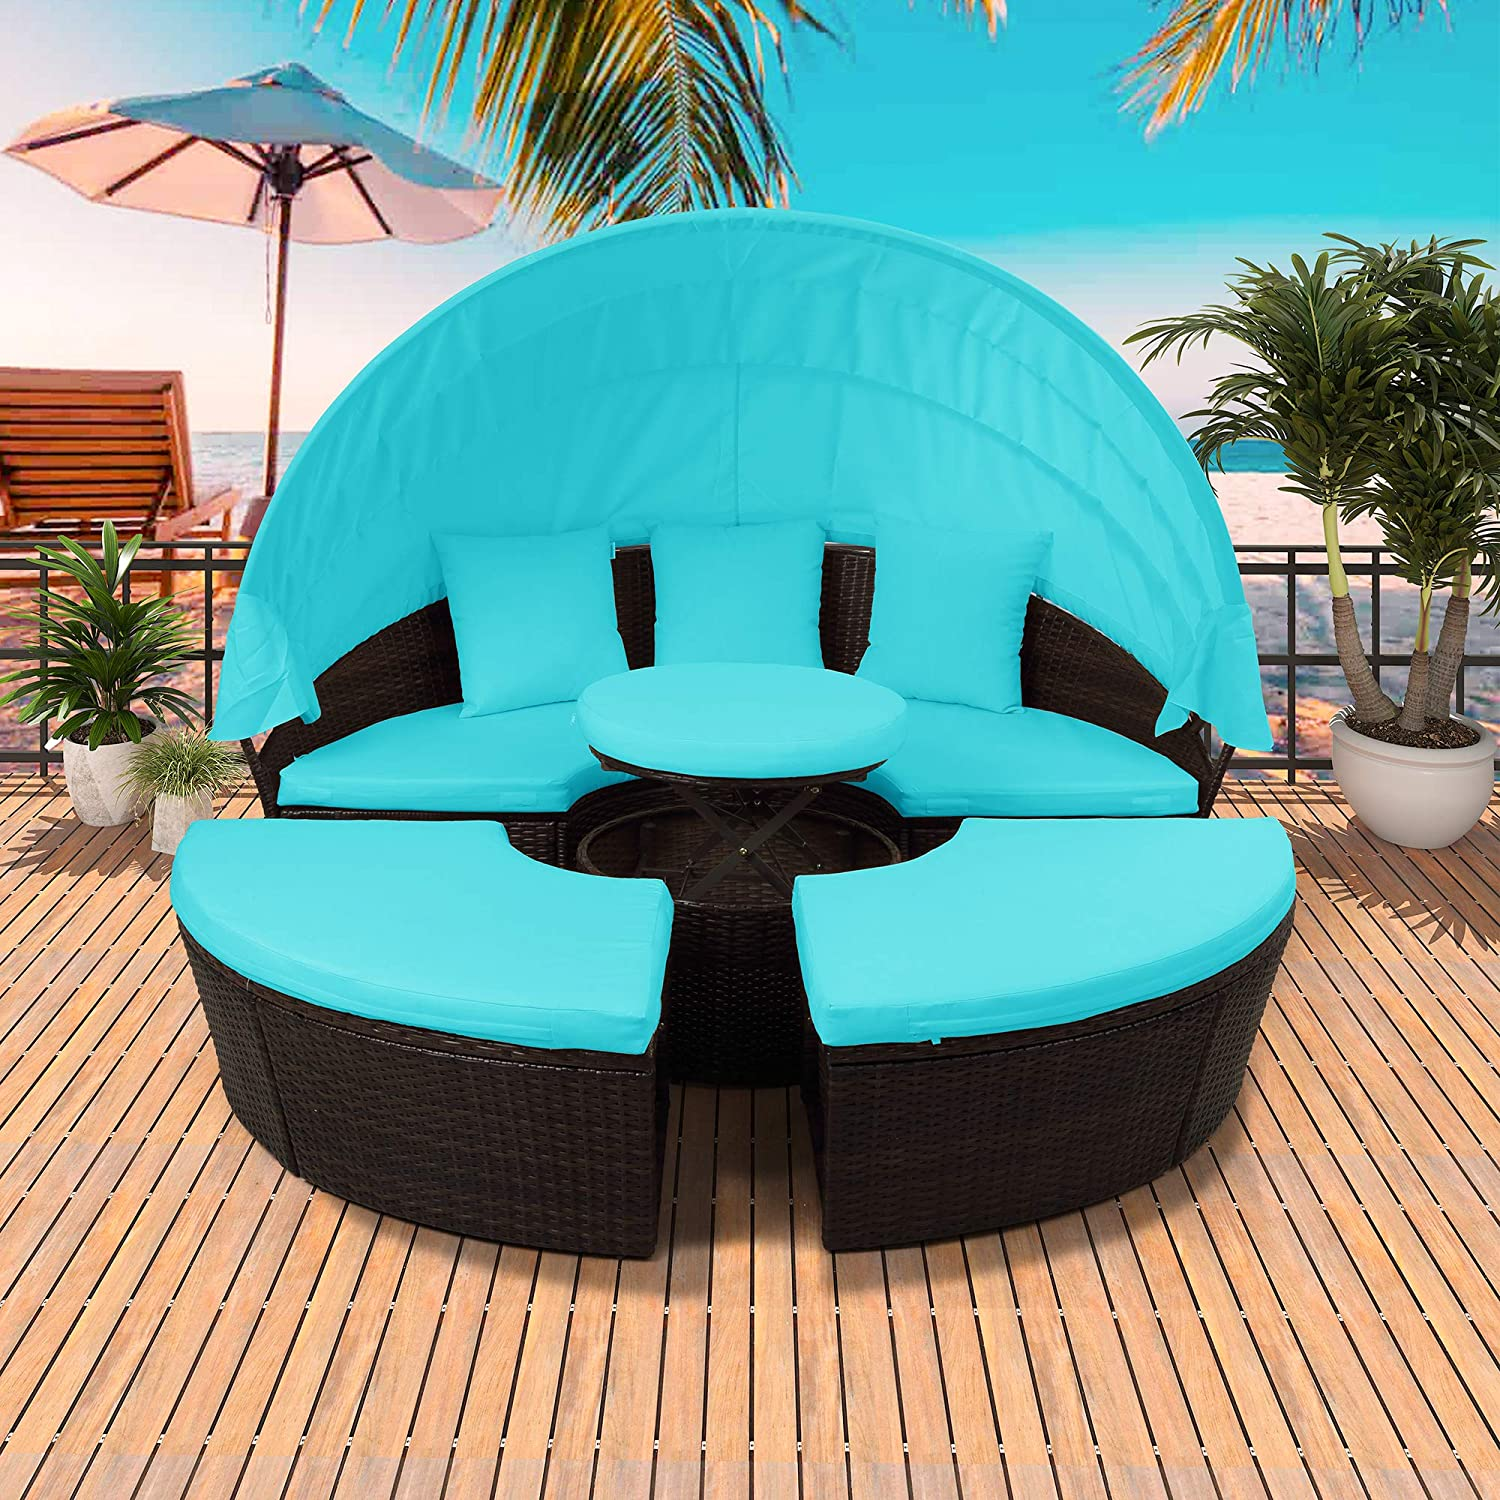 Patio Rattan Sofa Set Fresno Mall Popular popular Daybed Round Furniture Sectional Outdoor S